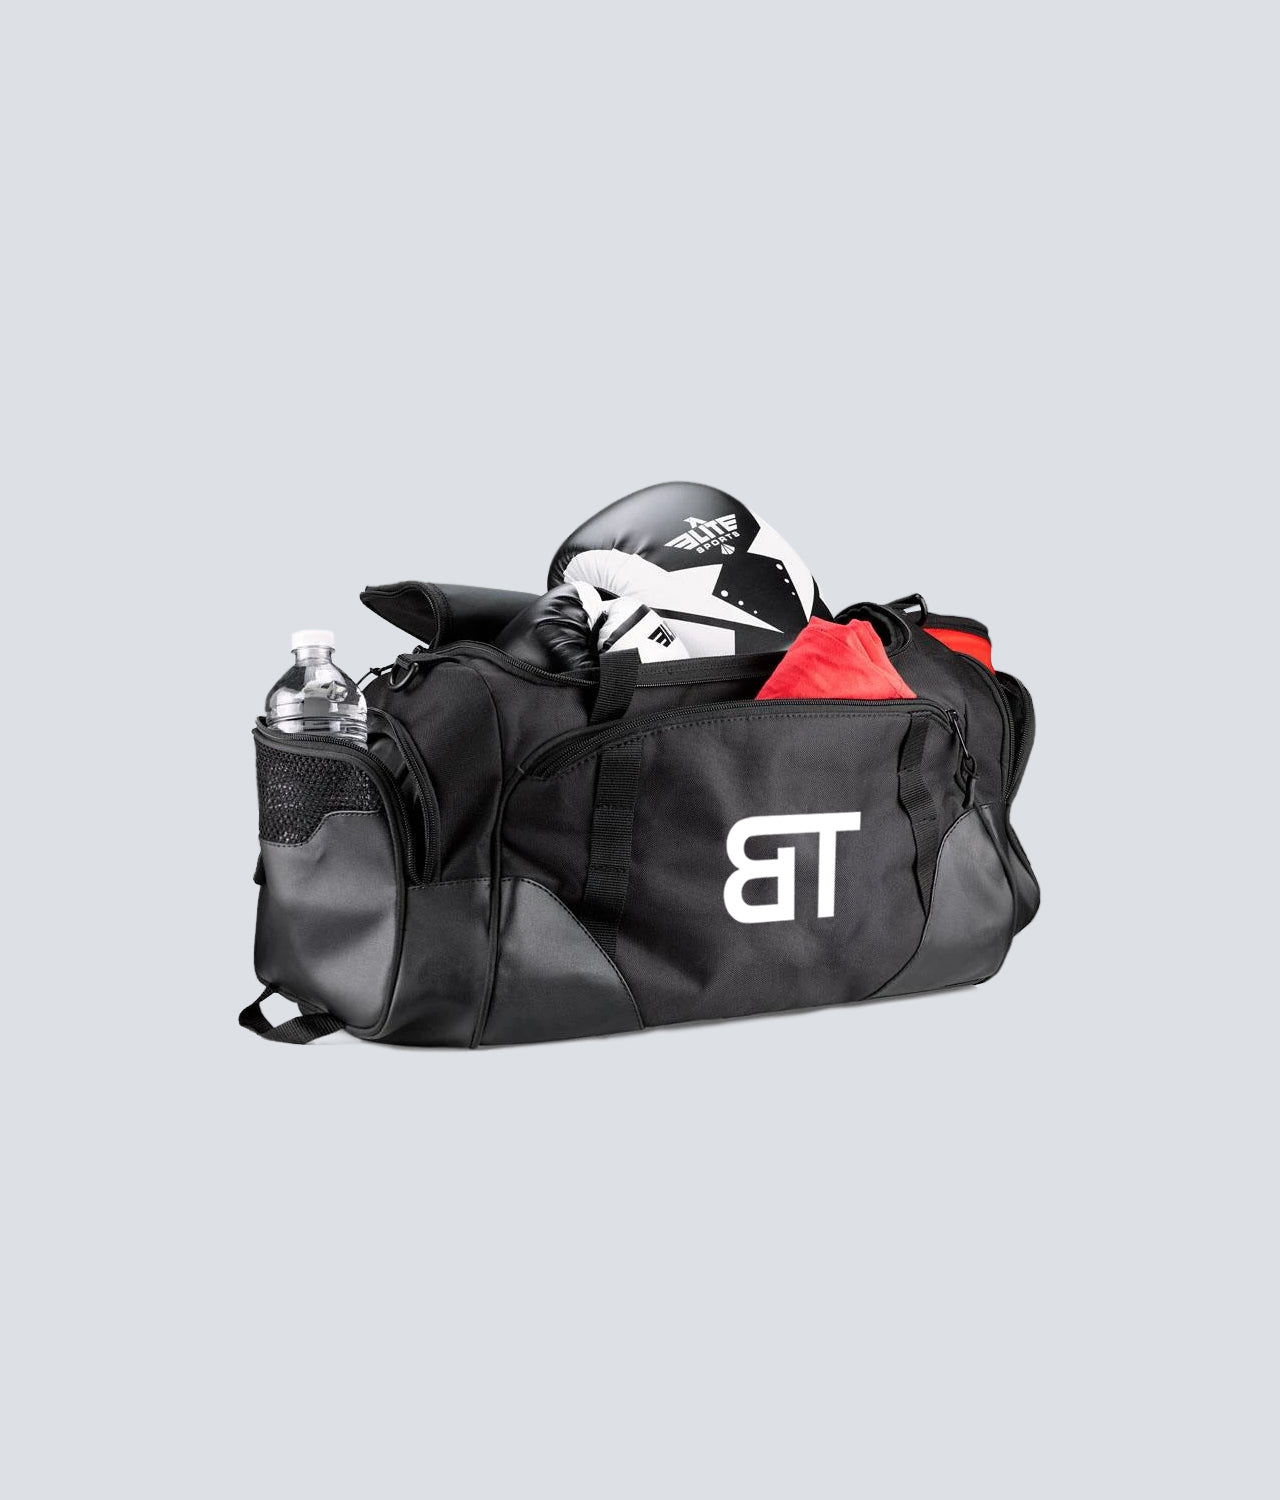 Born Tough 2 Zippered Side Pockets Black Gym Workout Duffel Bag